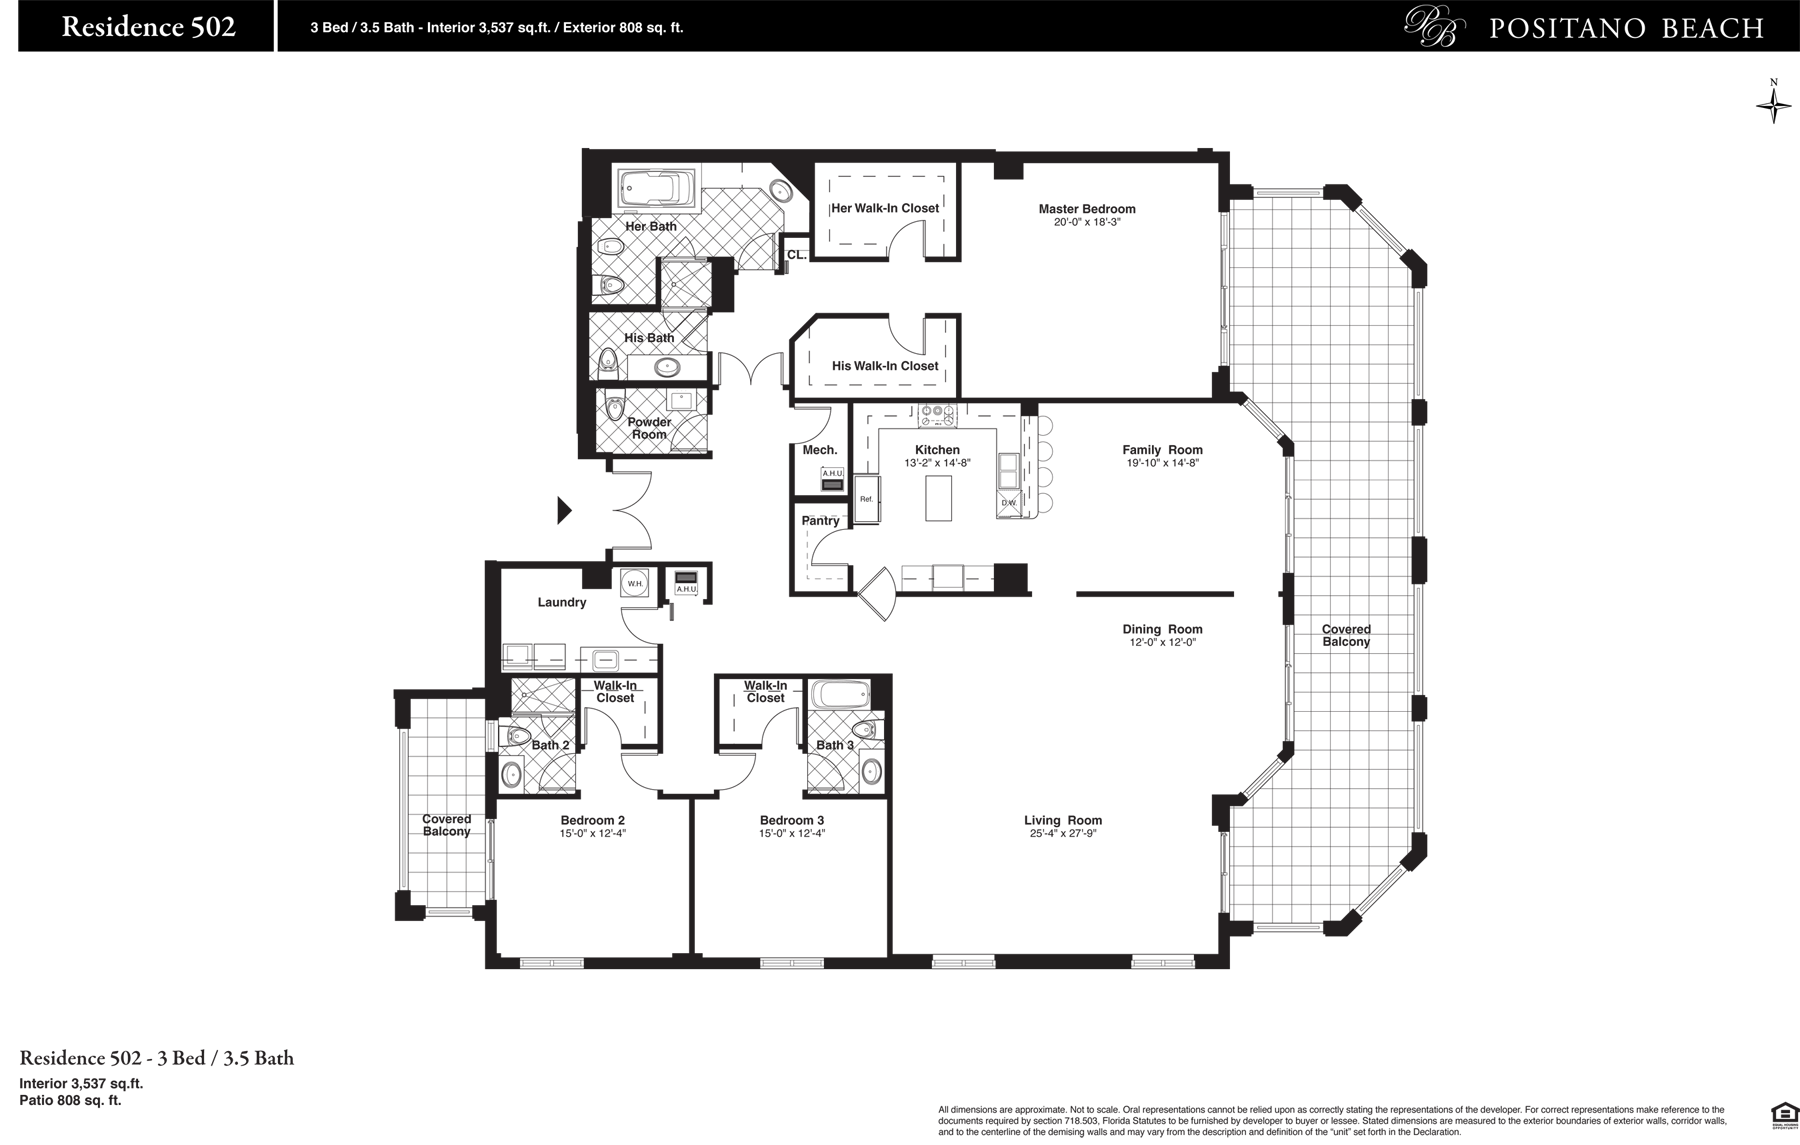 Positano Beach - Floorplan 13